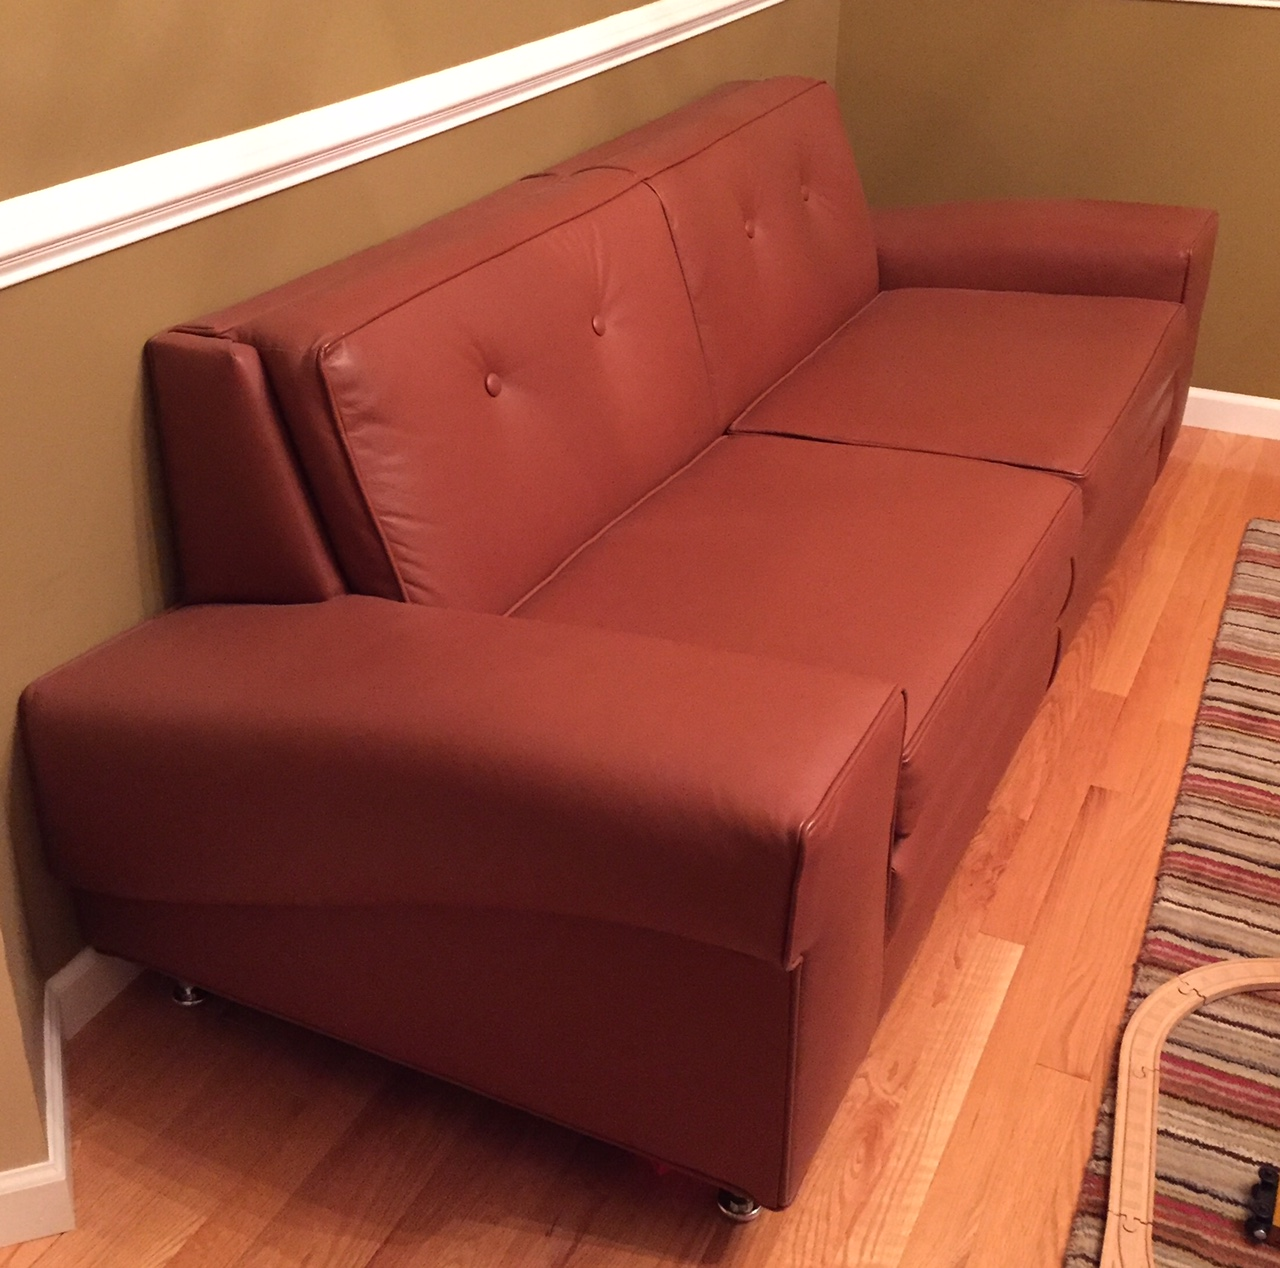 Euclid Heat Treating Leather Couch